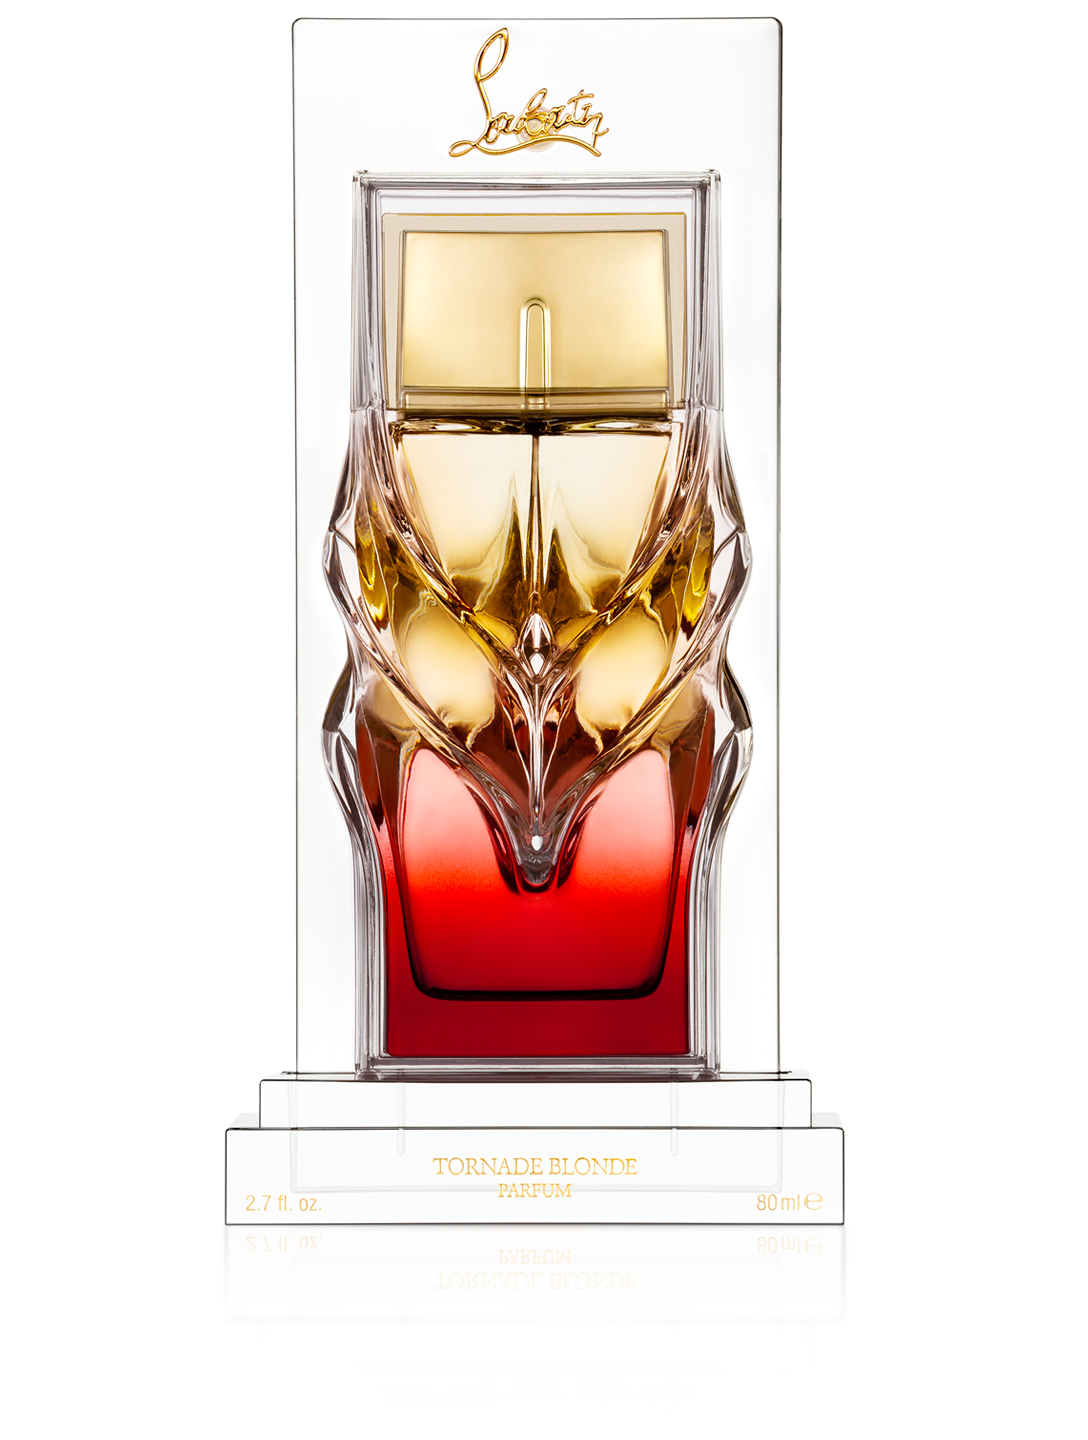 CHRISTIAN LOUBOUTIN Tornade Blonde Parfum Beauty